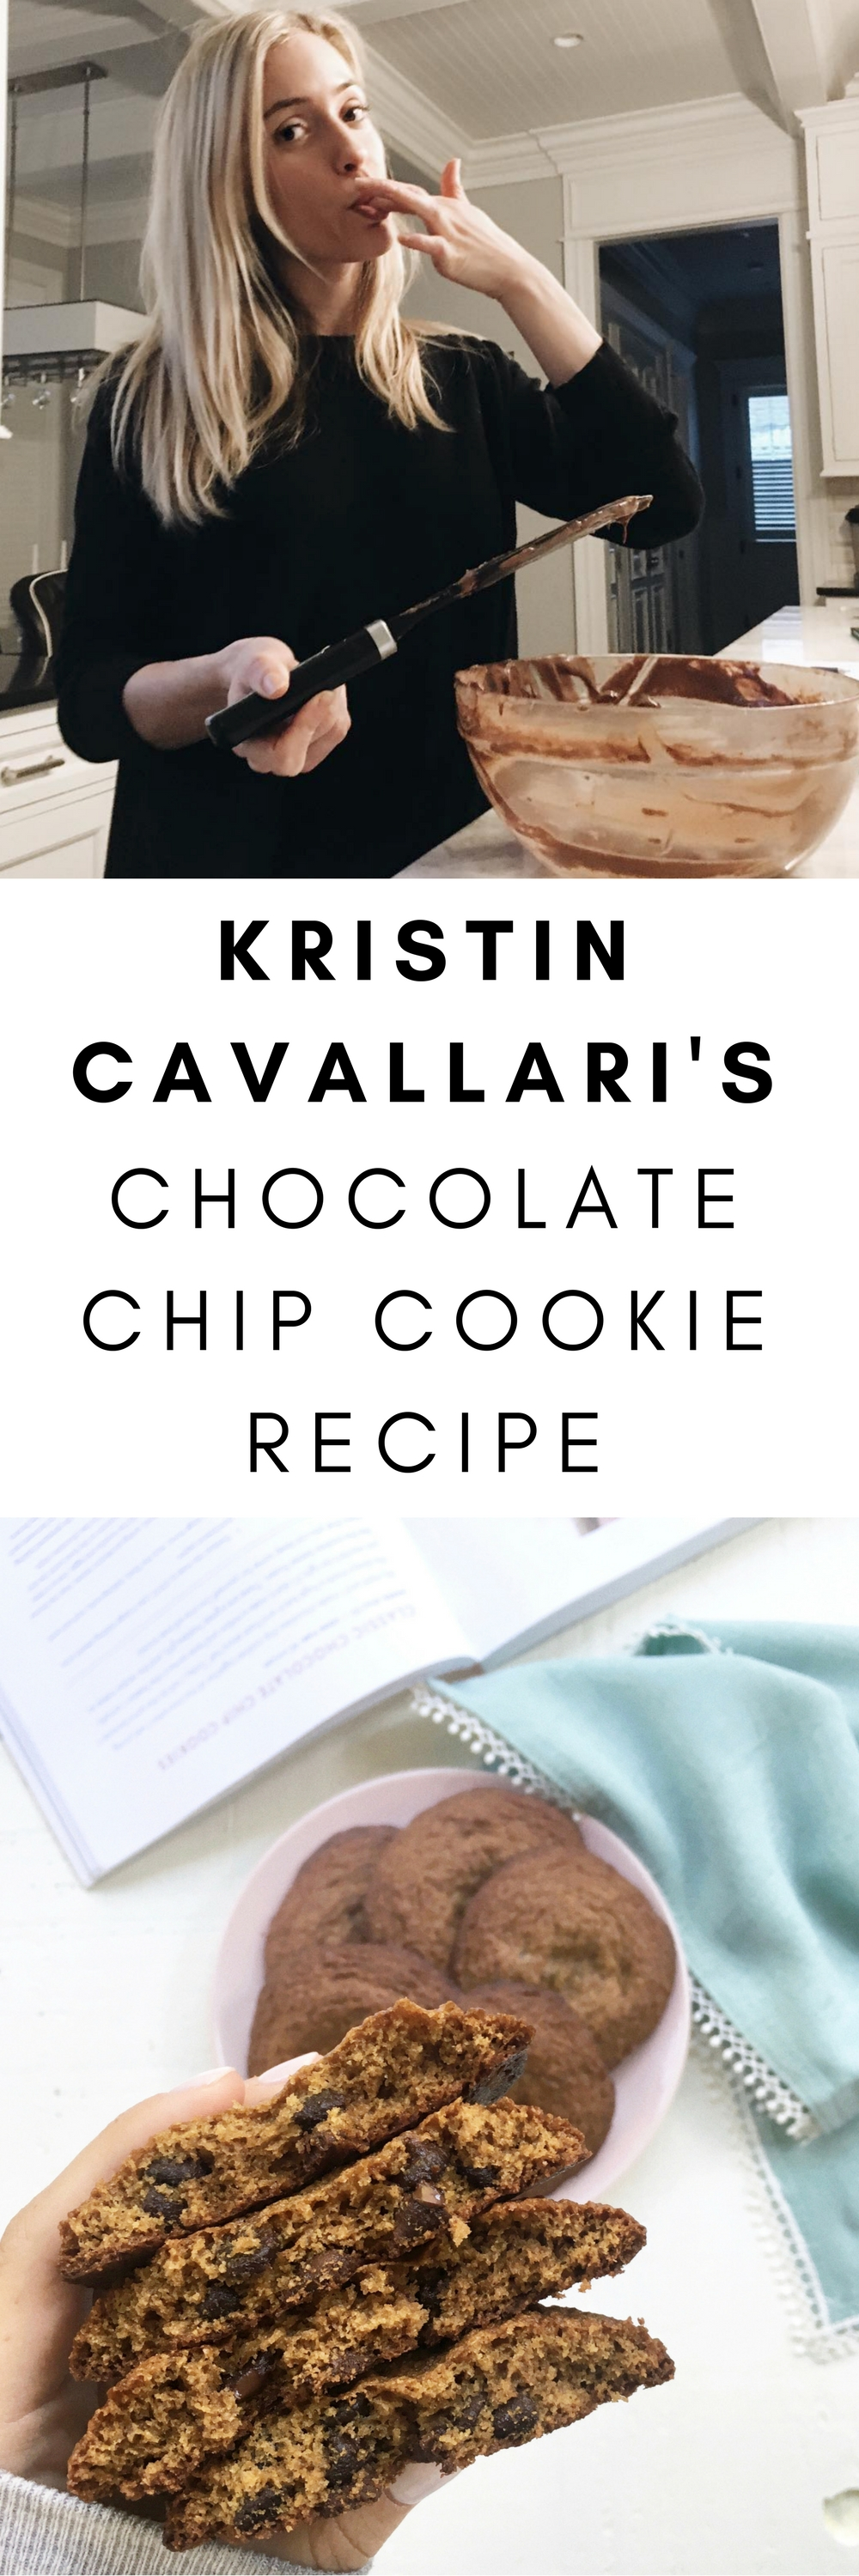 kristin cavallari's chocolate chip cookie recipe